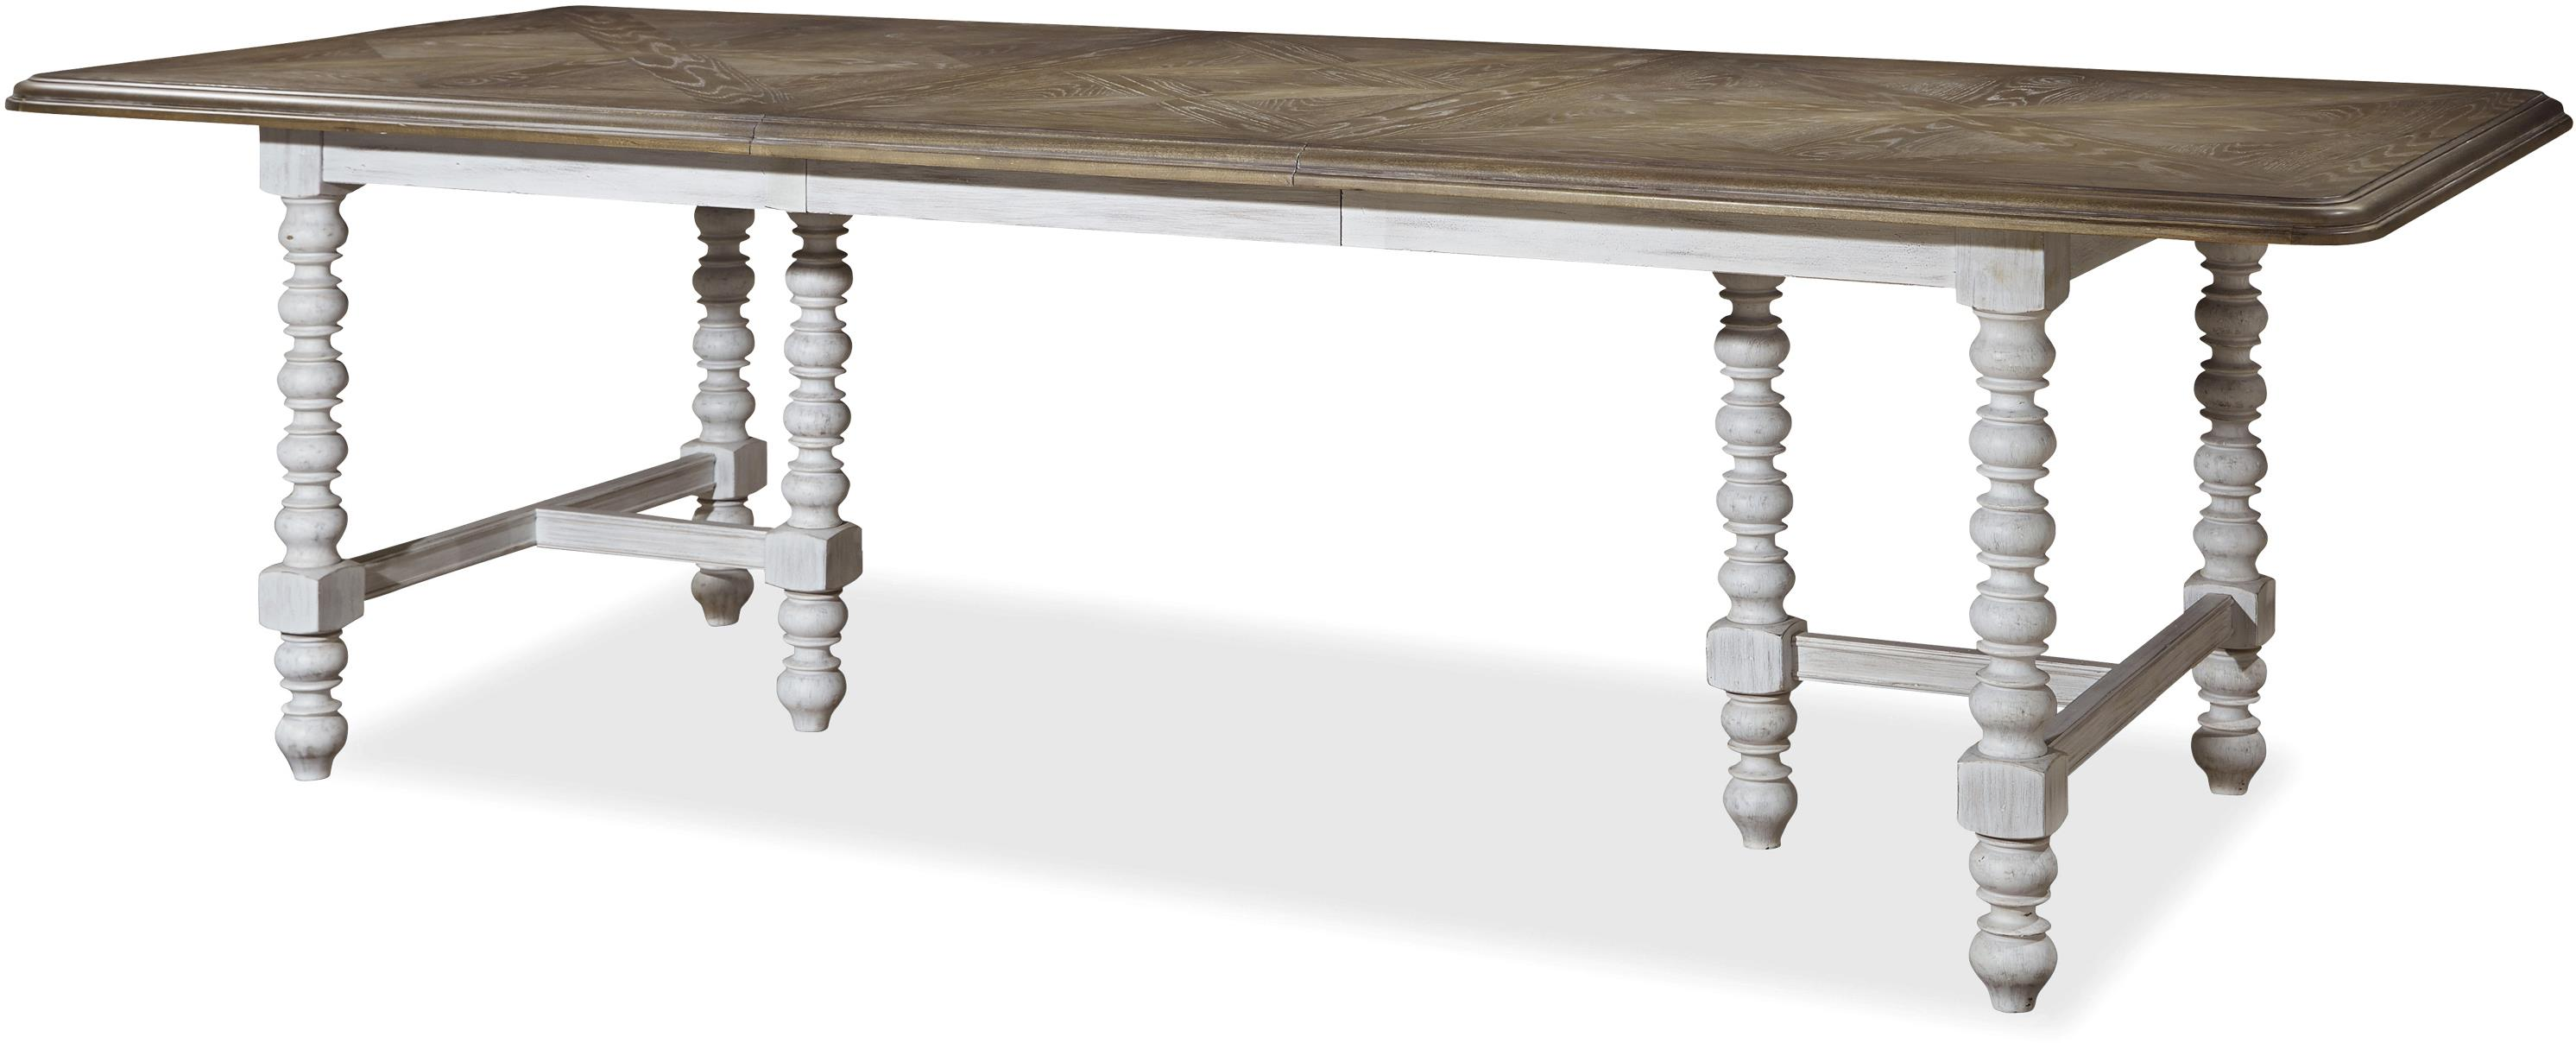 Universal Dogwood Dogwood Dinner Table - Item Number: 597A655